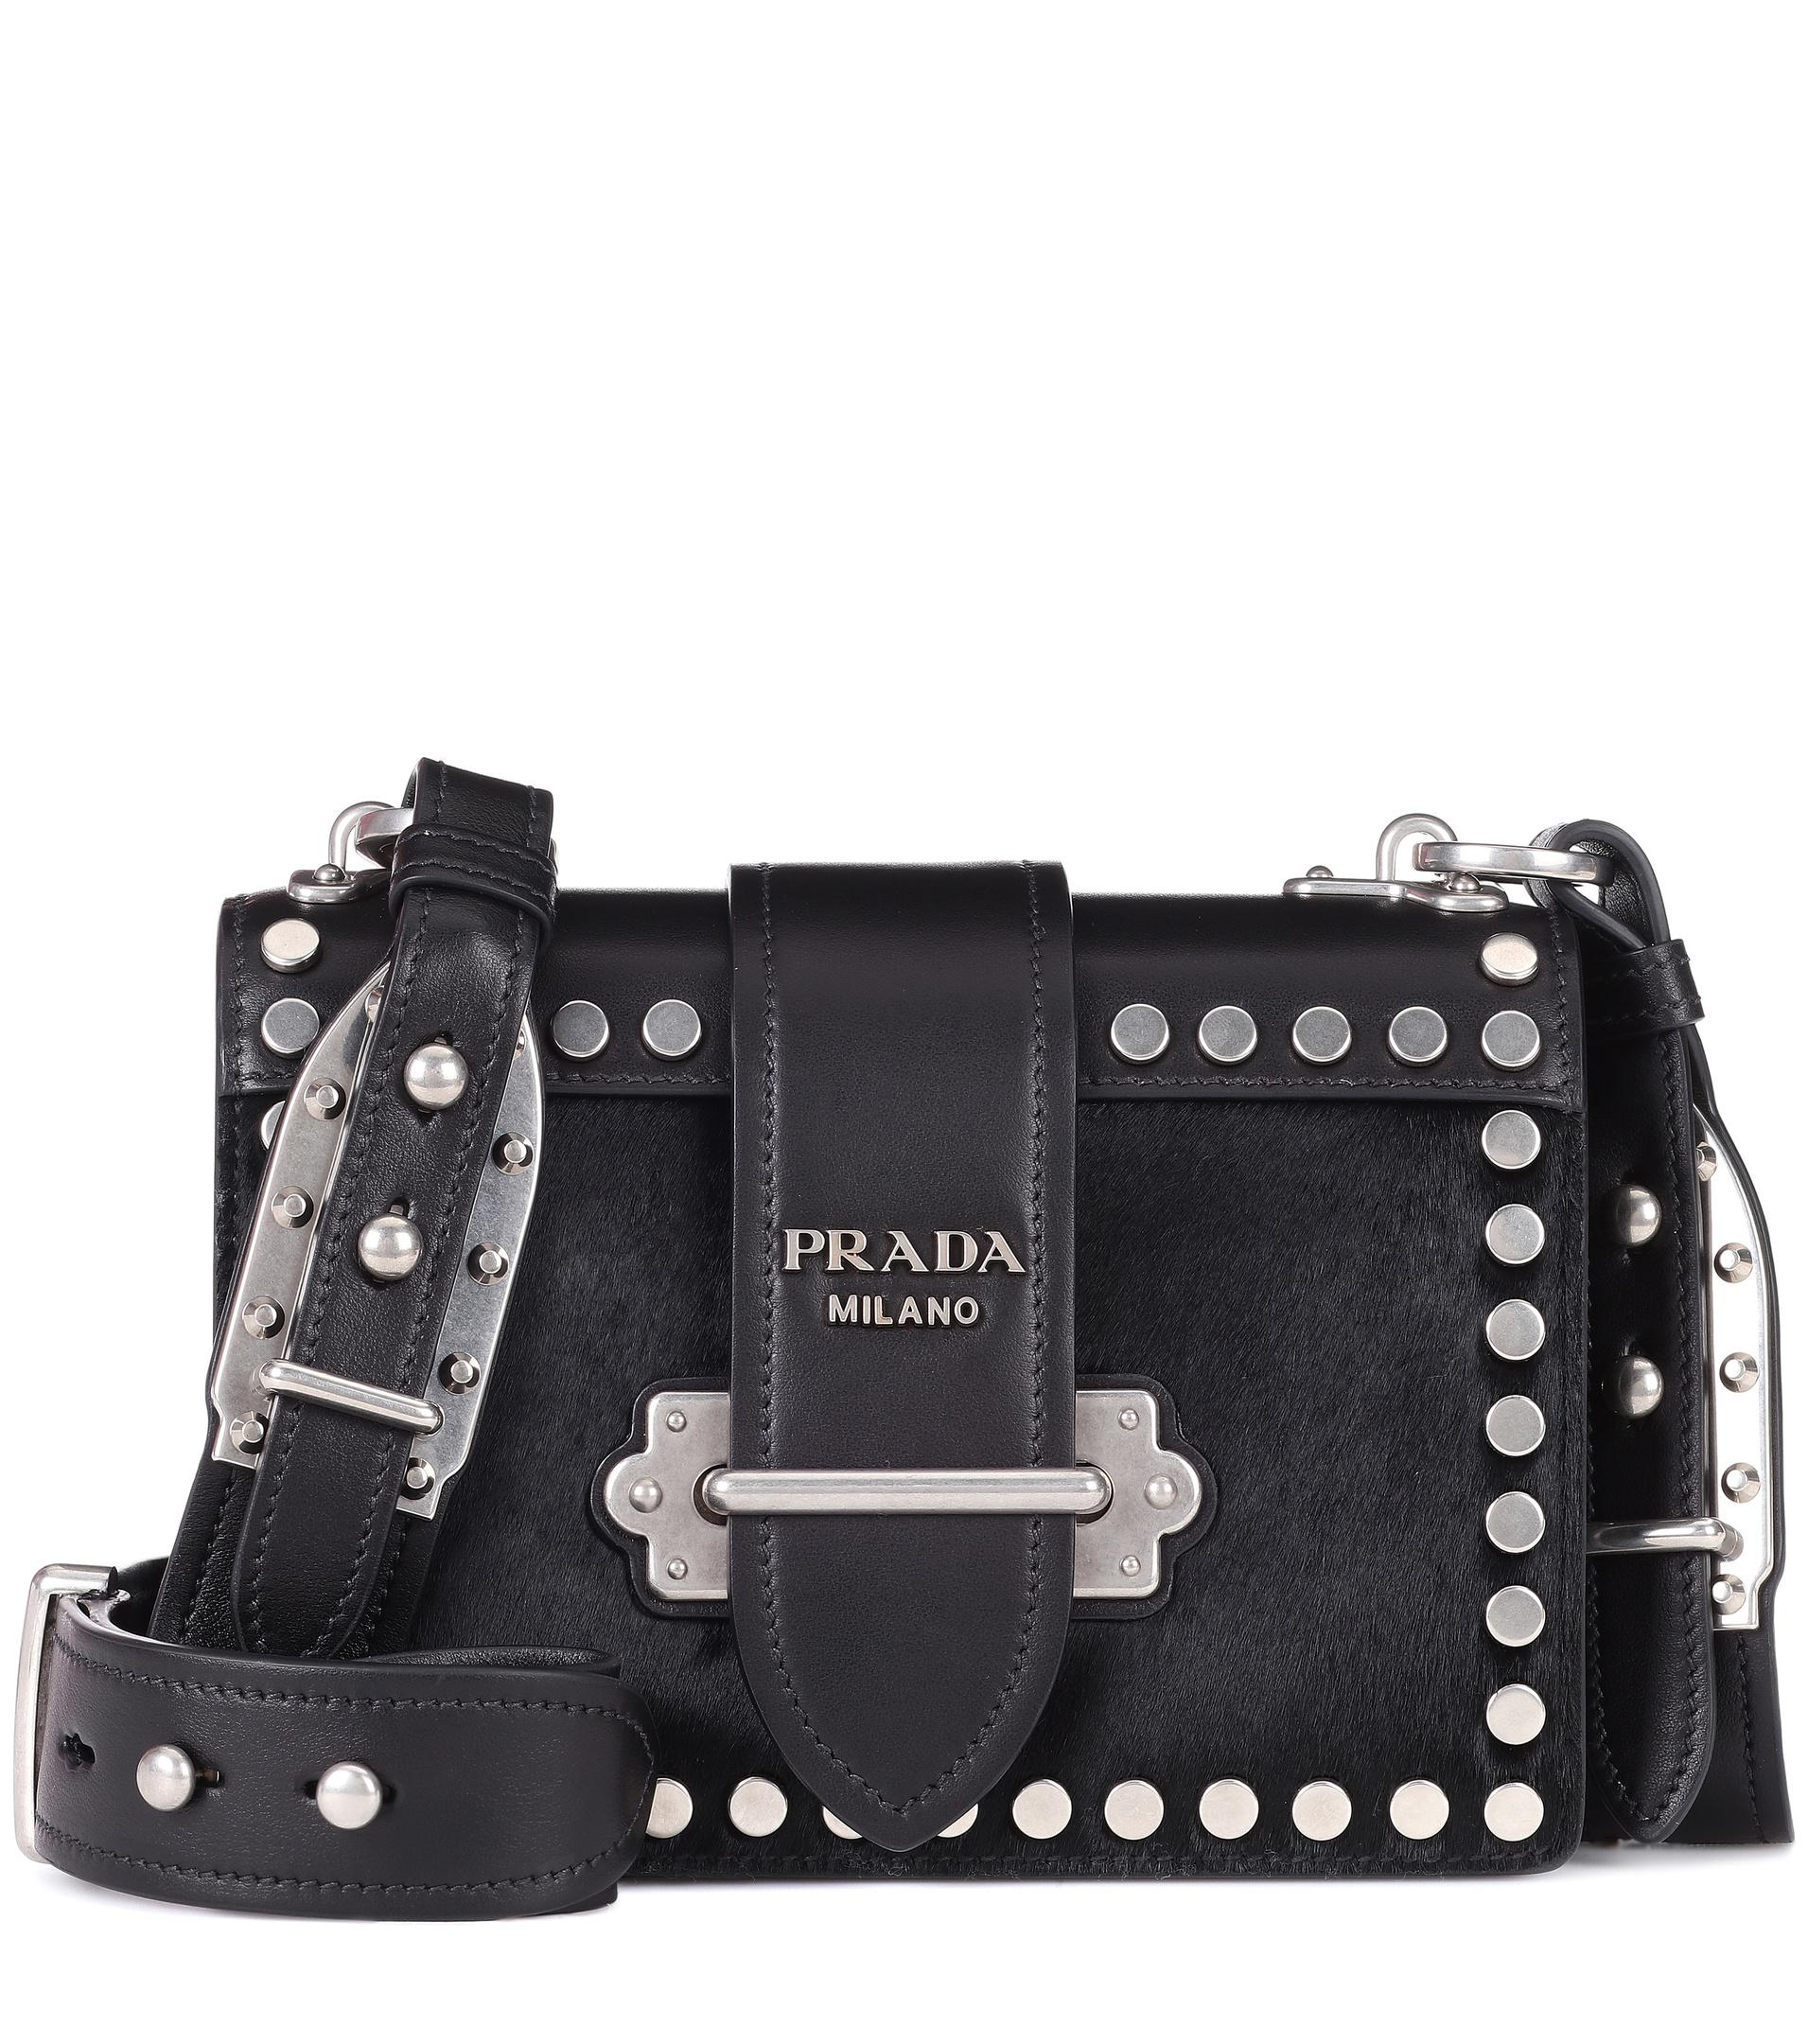 ae5be9f90ef8ce Prada Cahier Bag Nordstrom | Stanford Center for Opportunity Policy ...